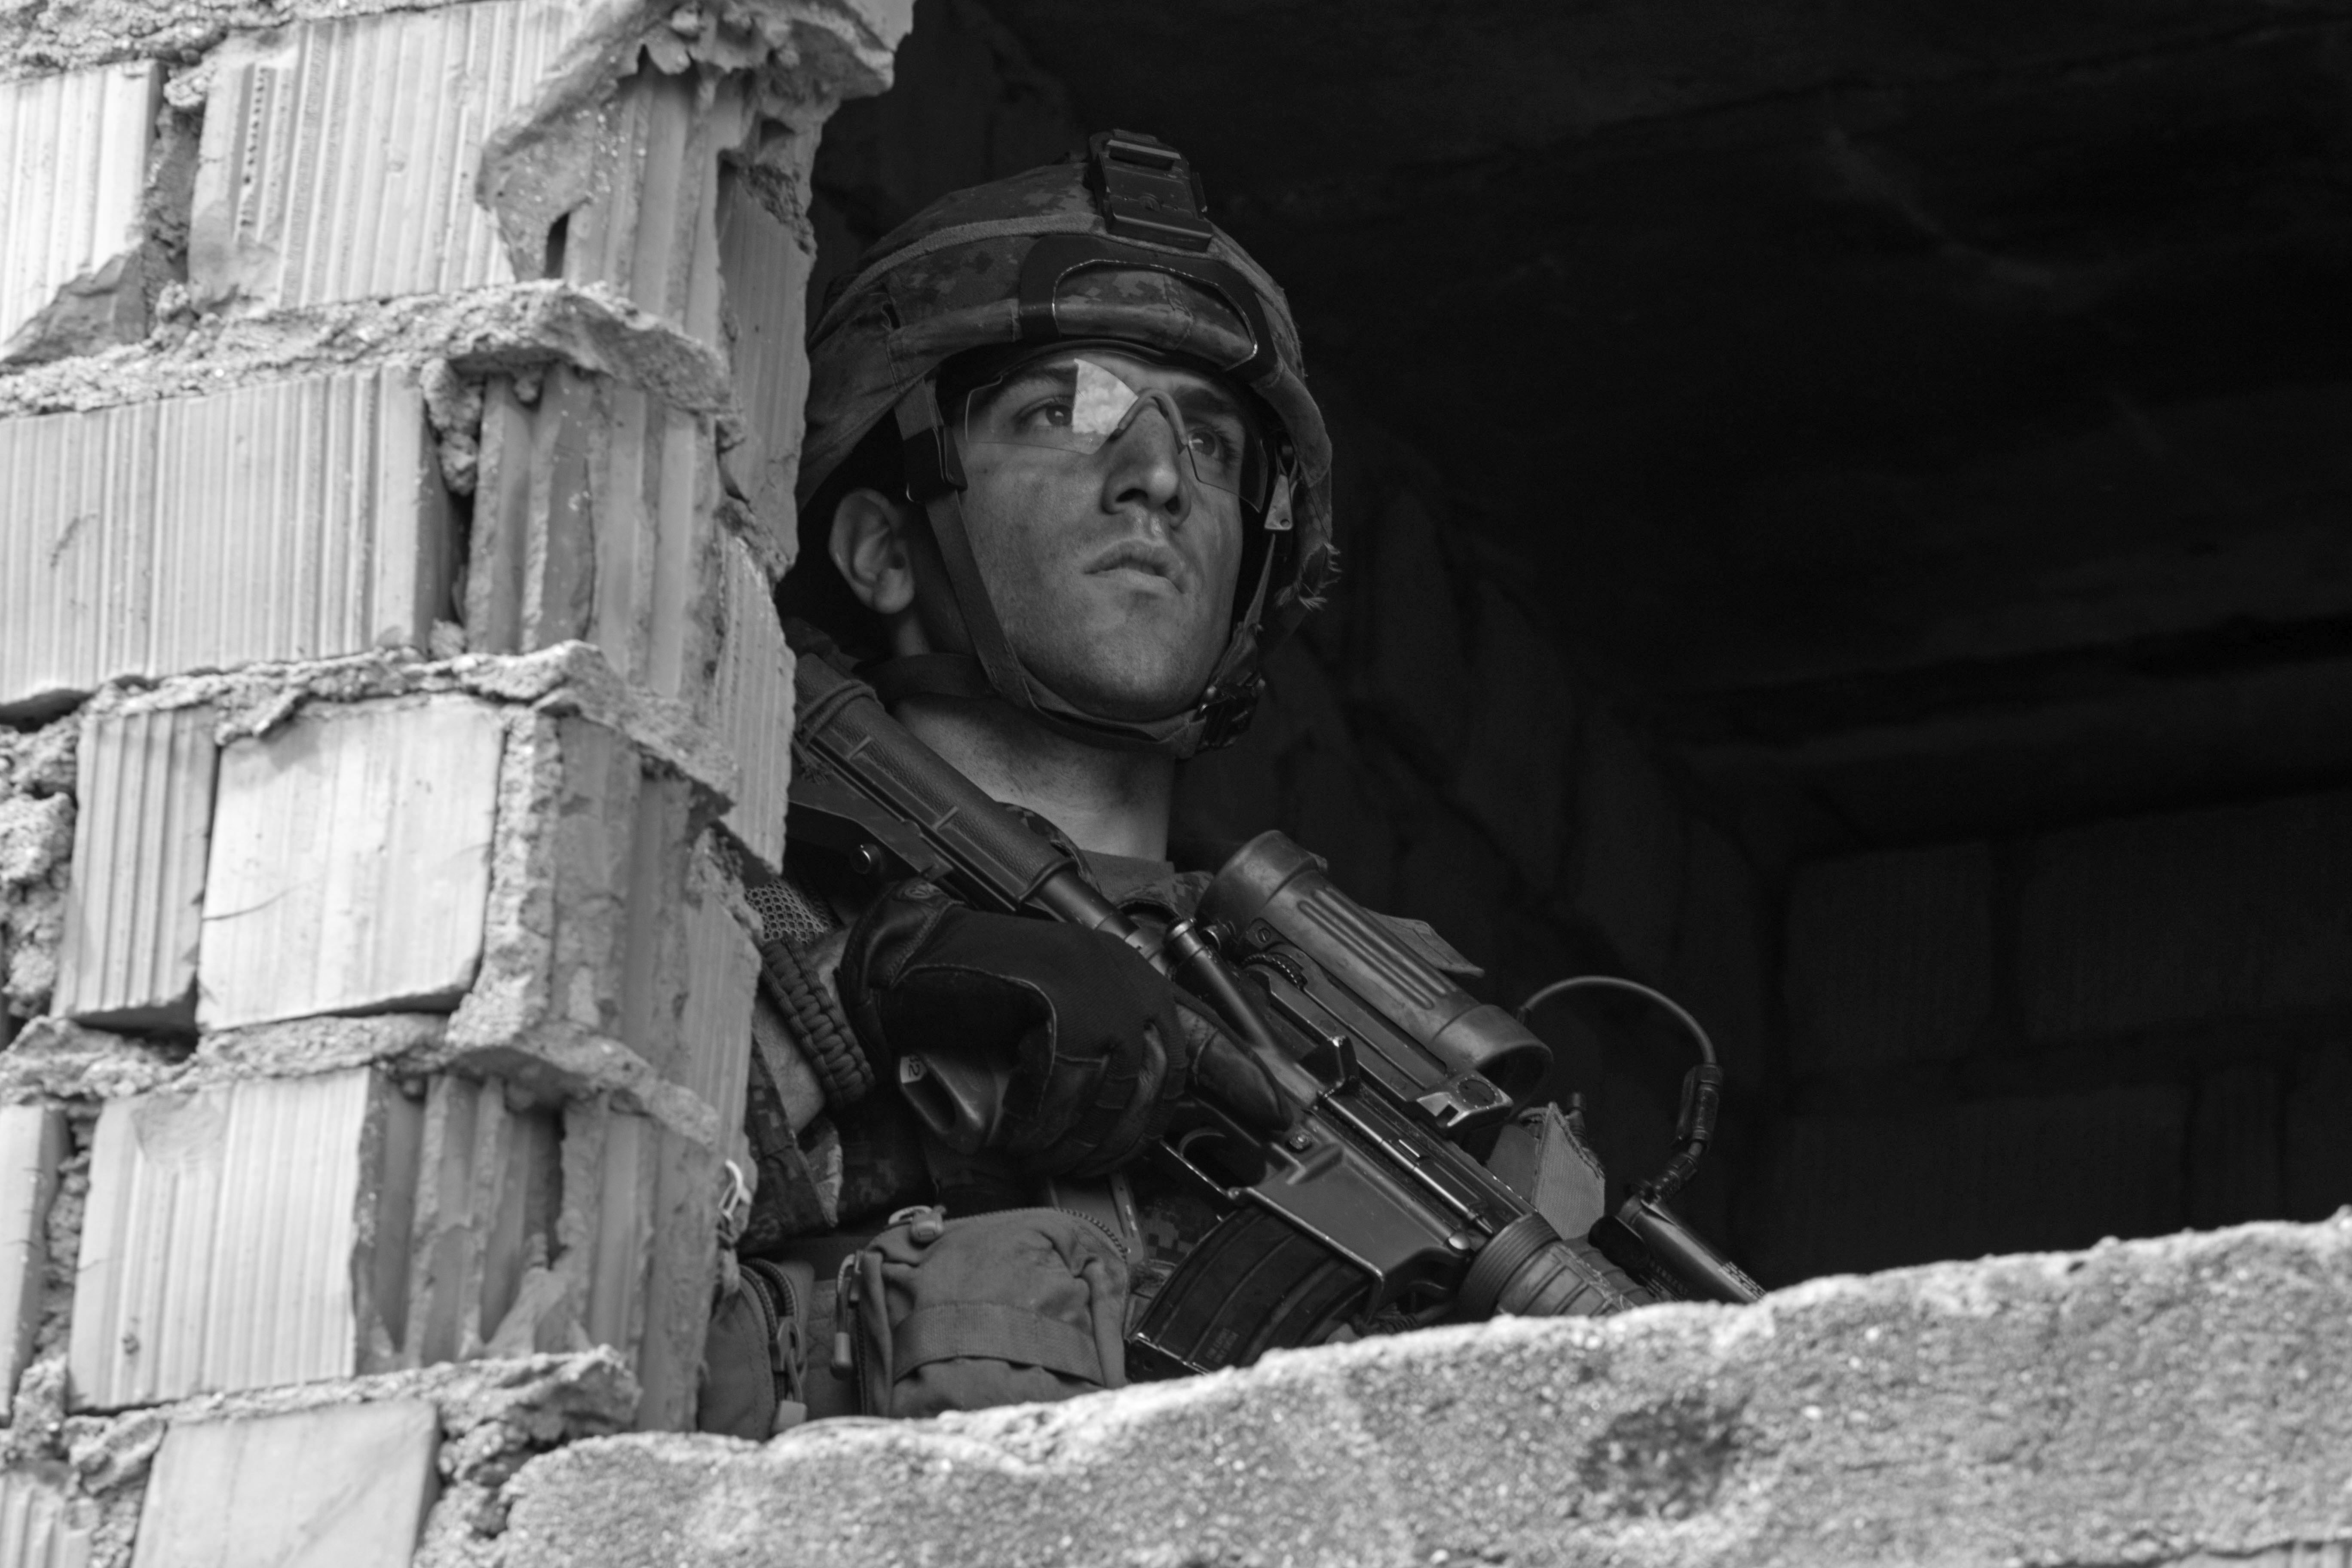 Generalized anxiety treatment bvgg - A Canadian Soldier